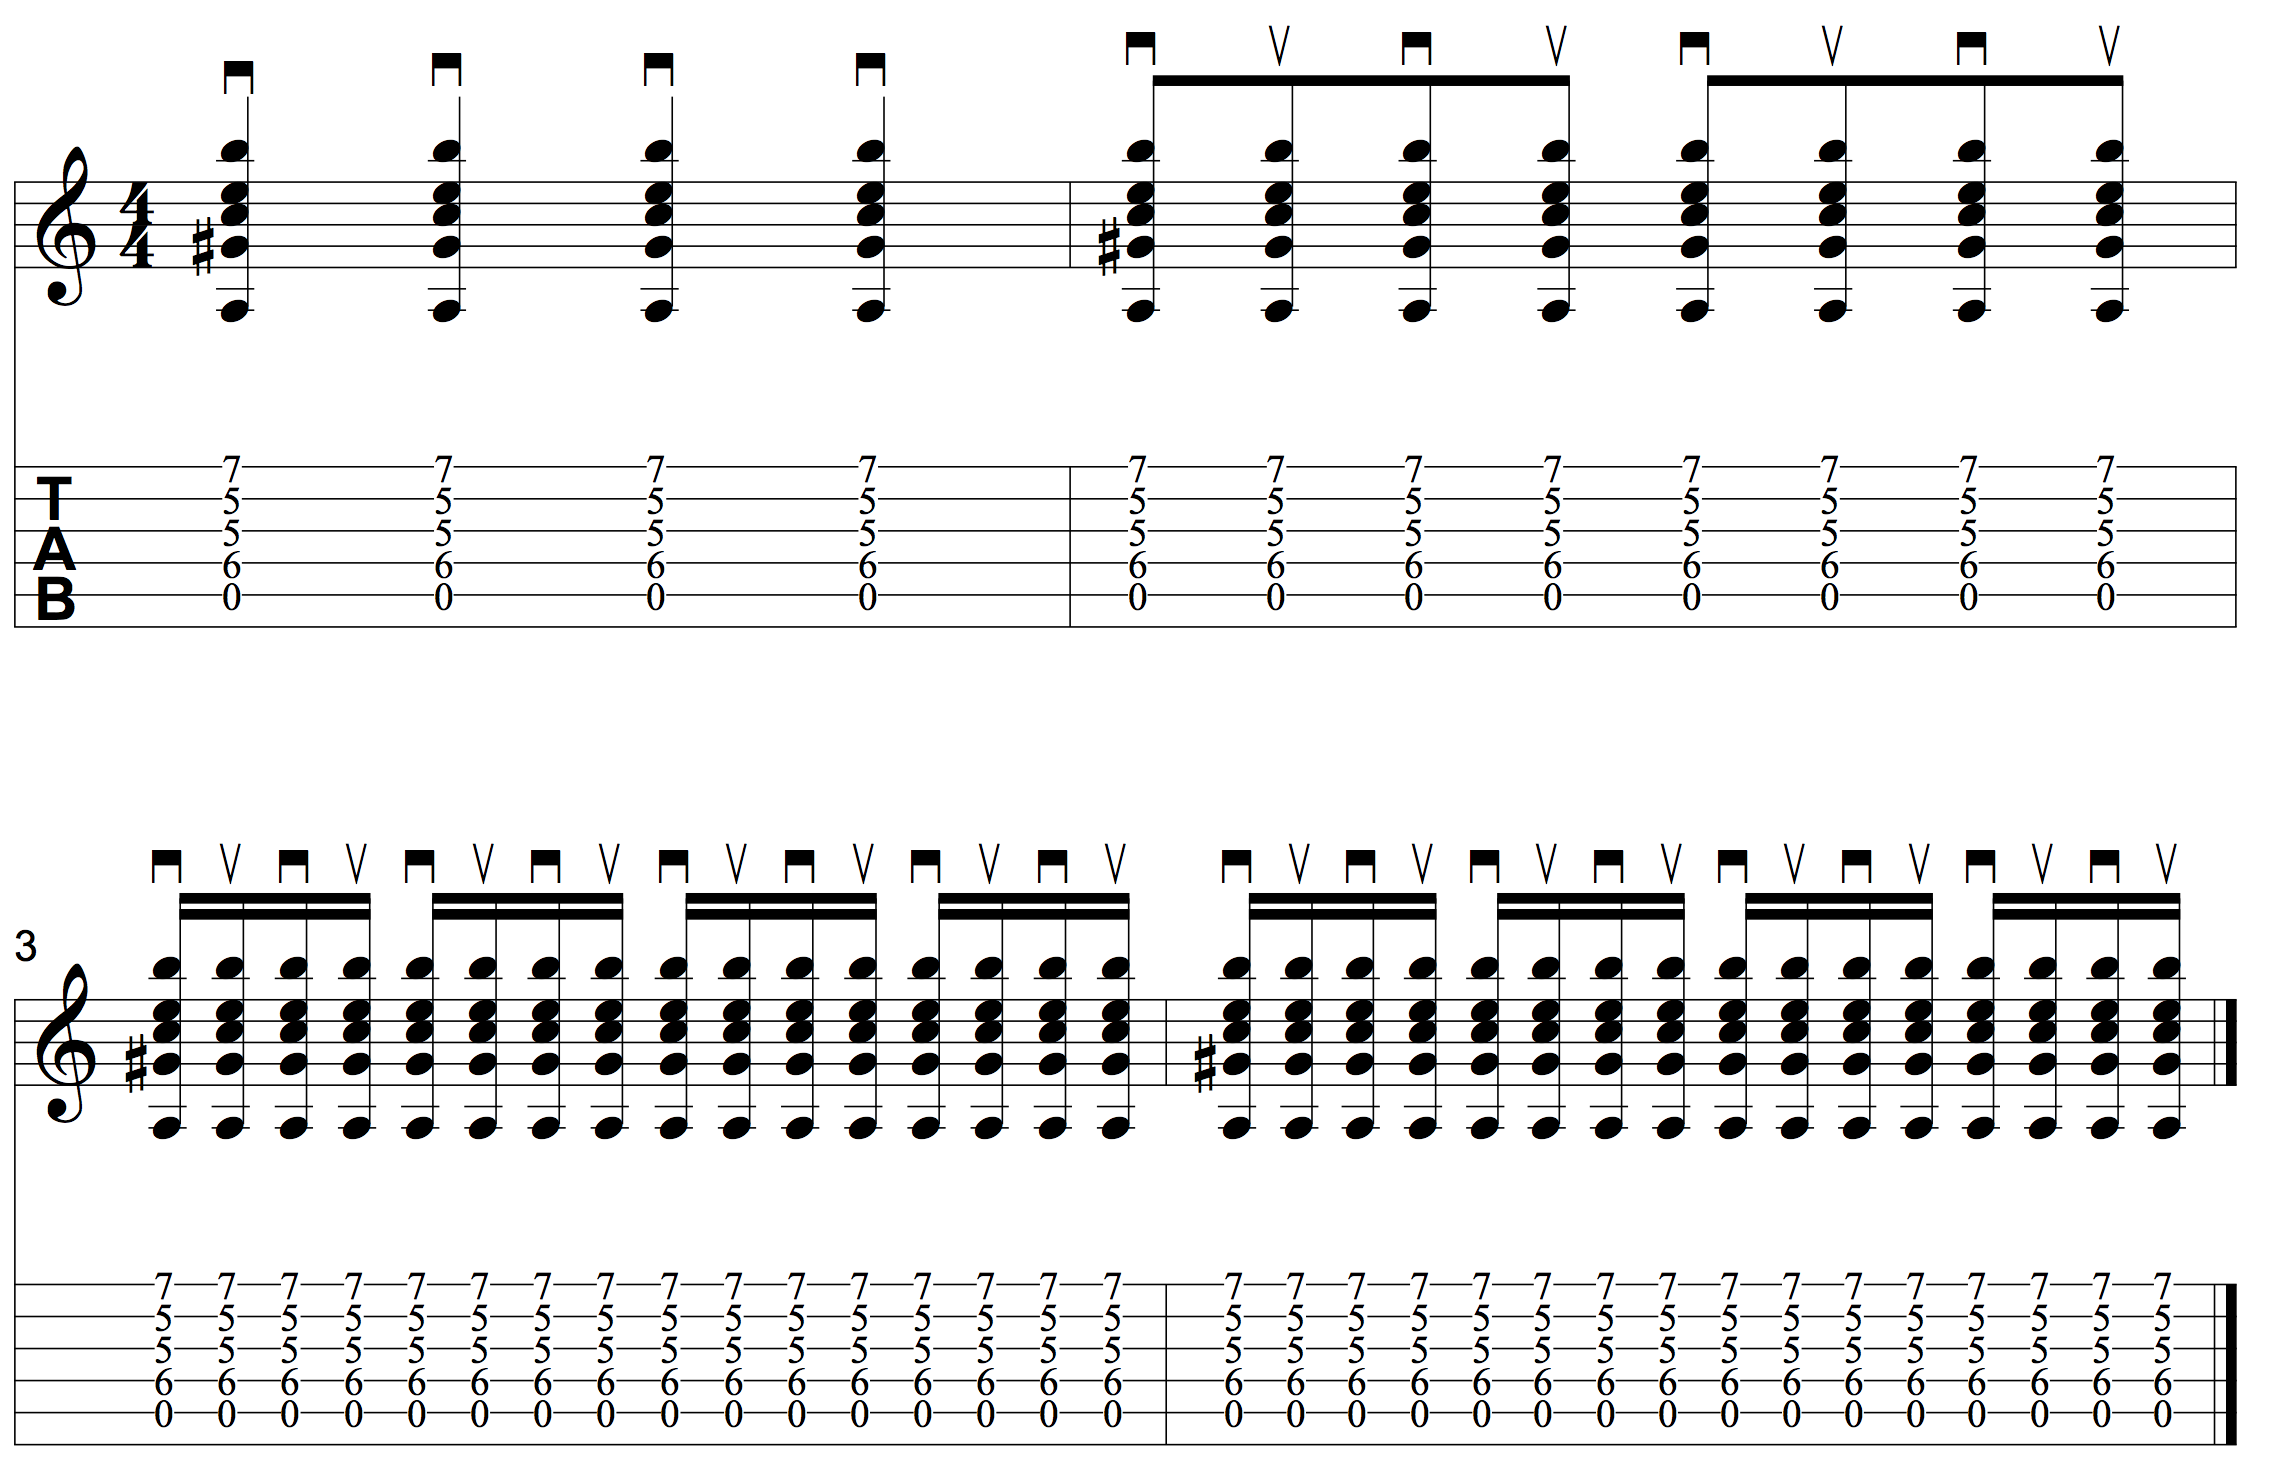 Tremolo strumming exercise for guitar � learn to strum fast, repeated chords.